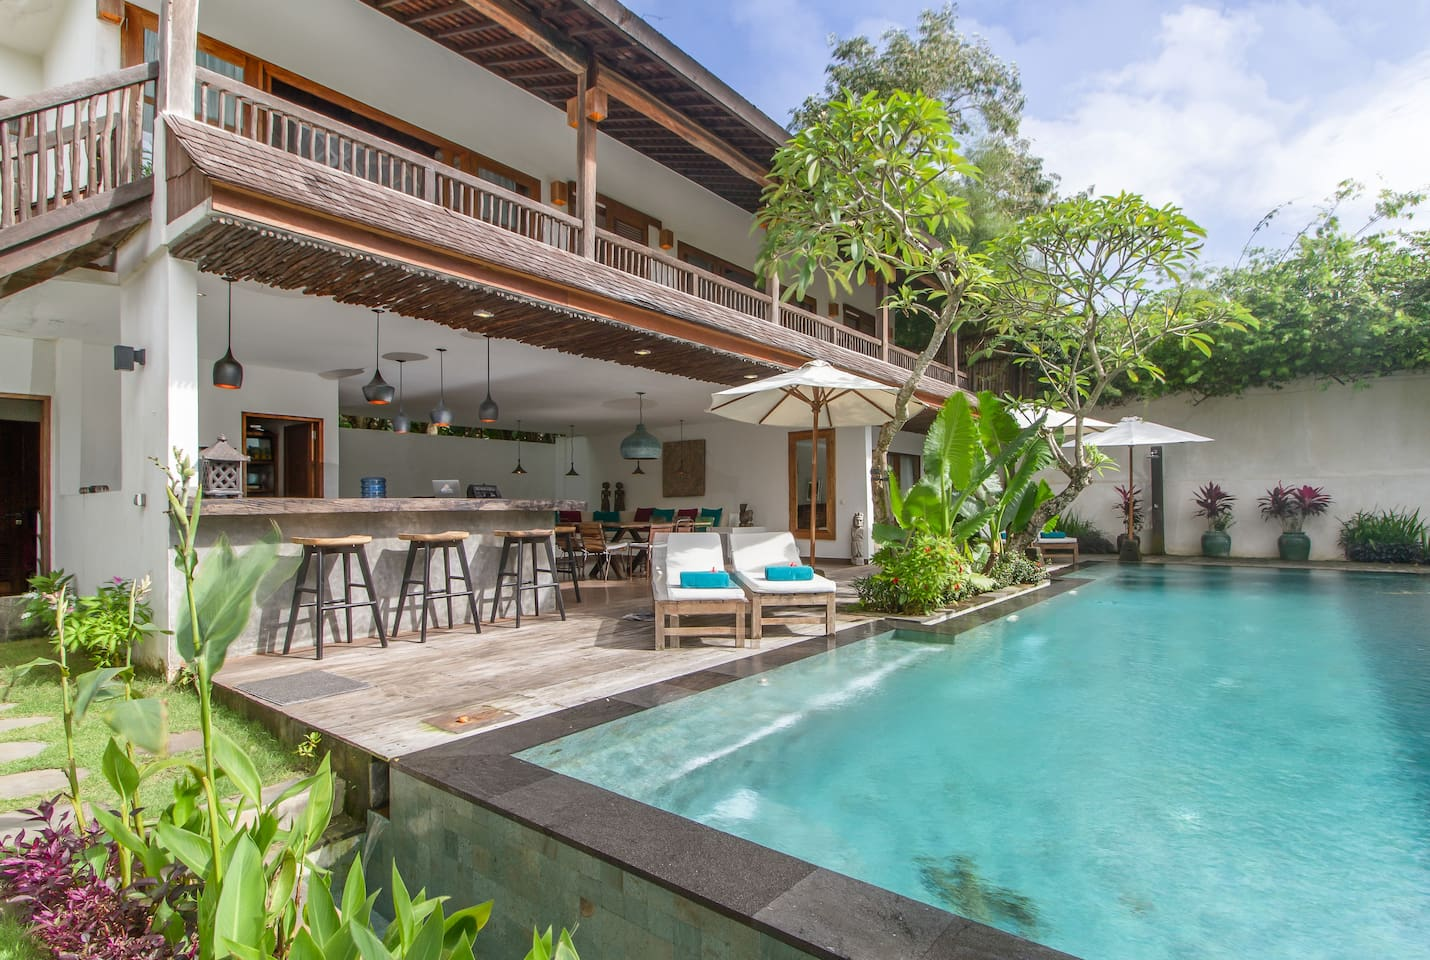 Forest Villa By The Beach Villas For In South Kuta Bali Indonesia